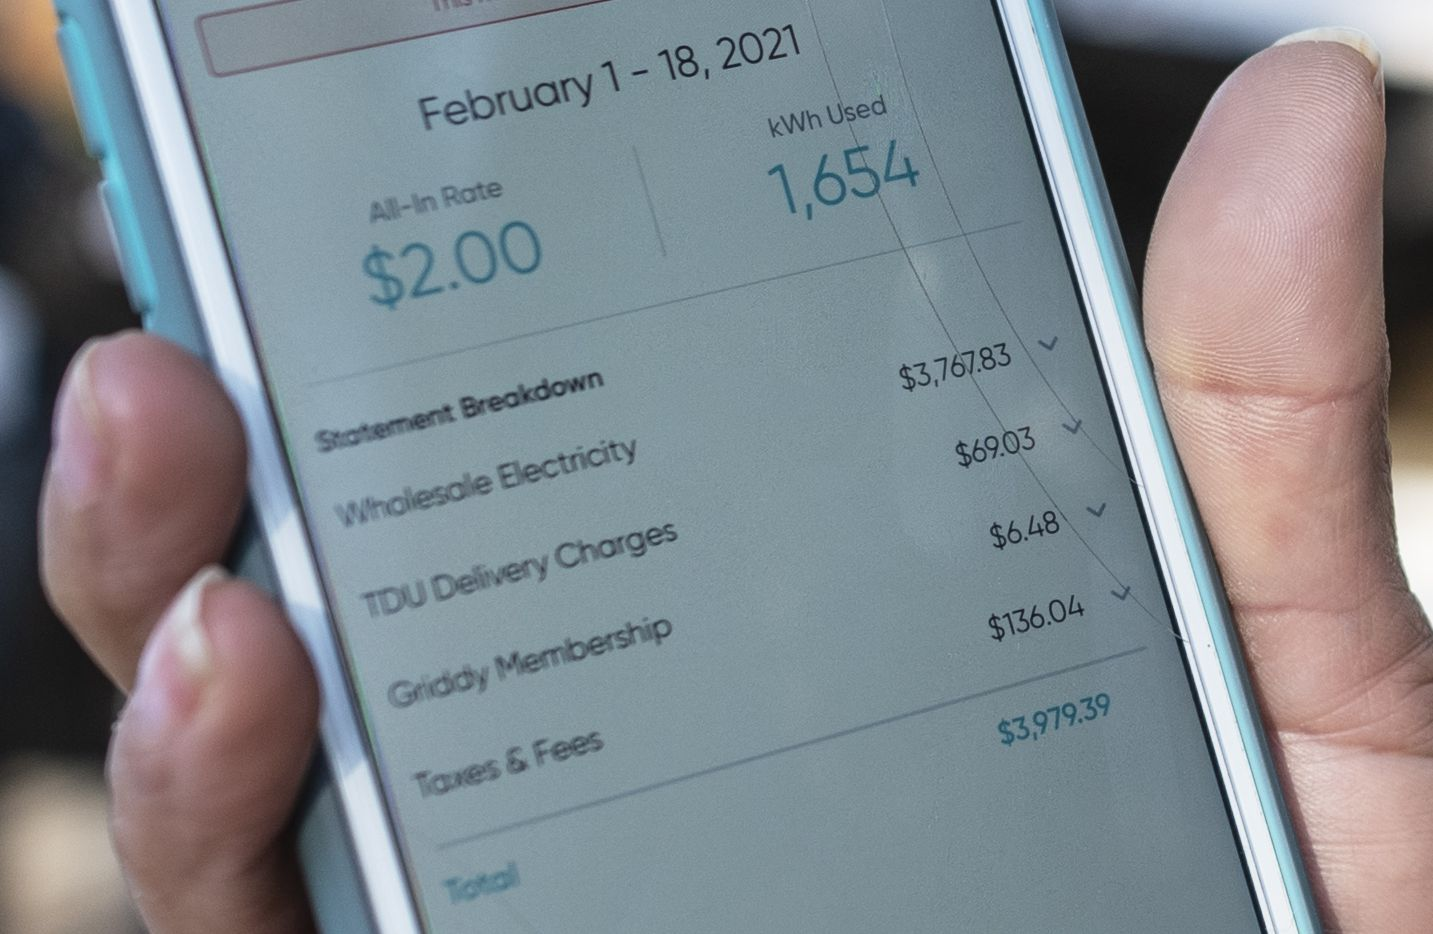 Ivet Cantu, 45, shows her electricity bill from Griddy energy on an app totaling $3,979.39 after additional charges and fees, outside of her home in Dallas, on Friday, Feb. 19, 2021.